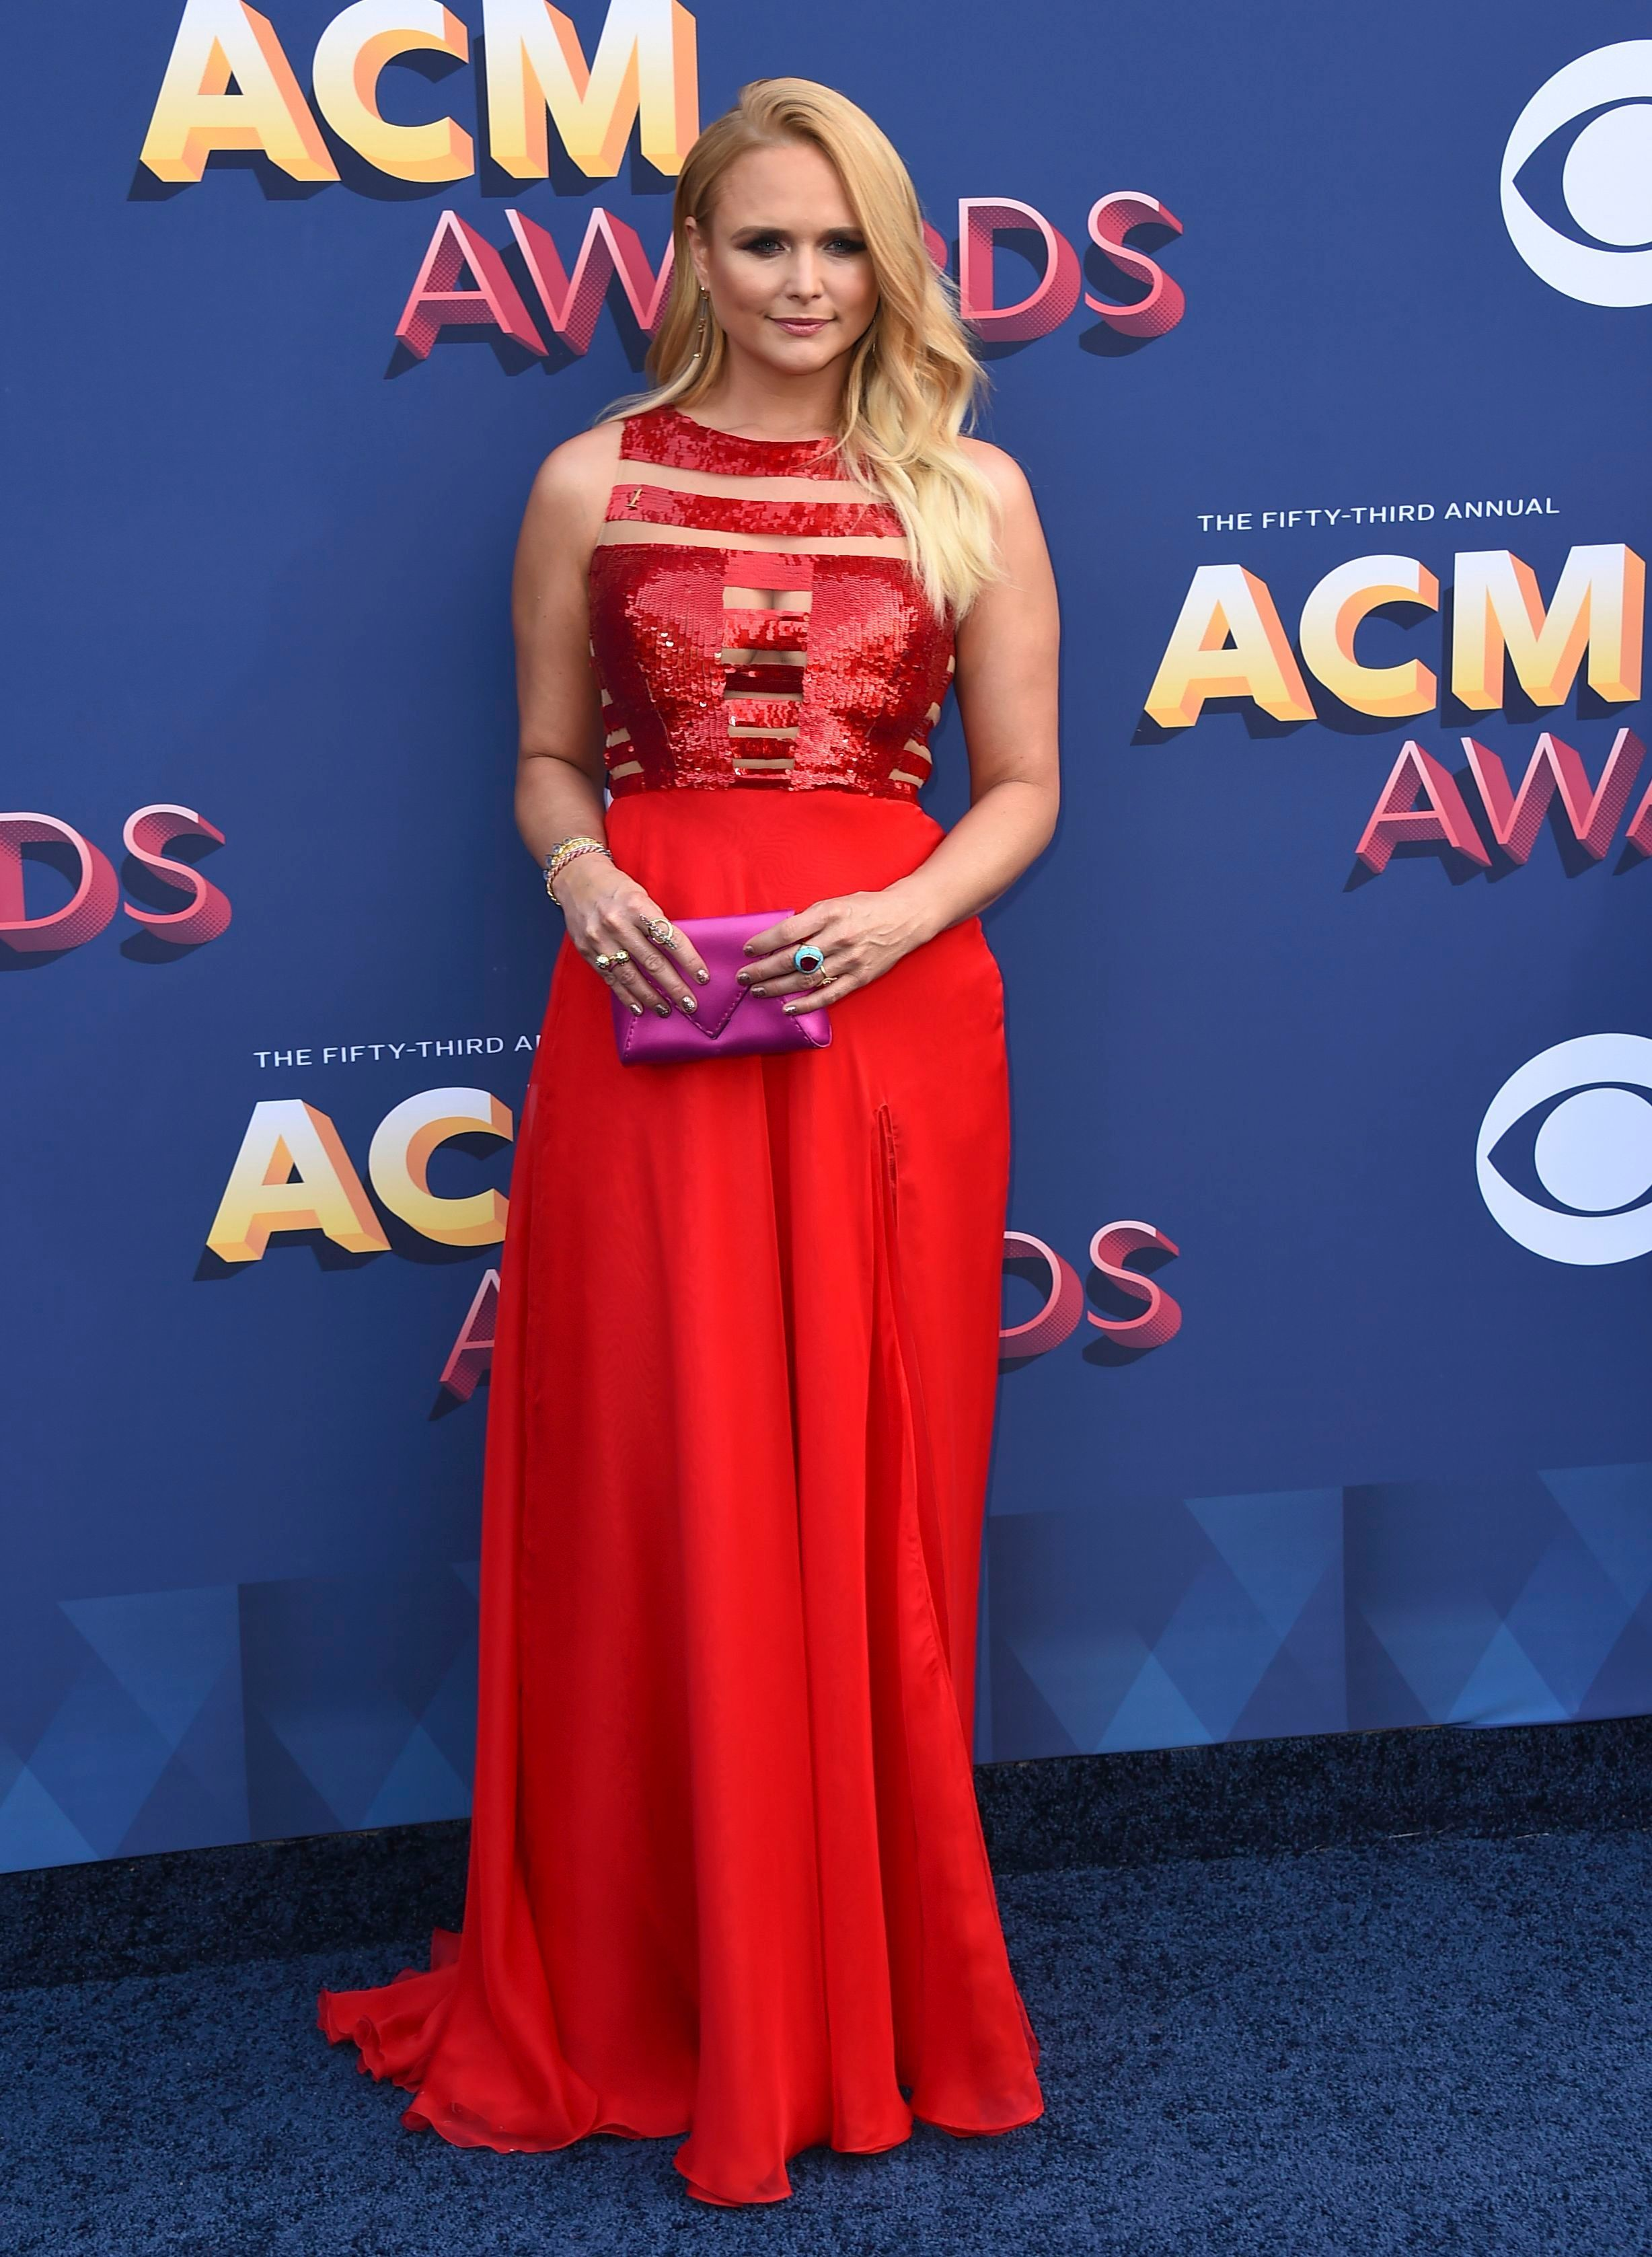 ACM Awards 2018 Red Carpet Fashion: See Celeb Dresses, Gowns